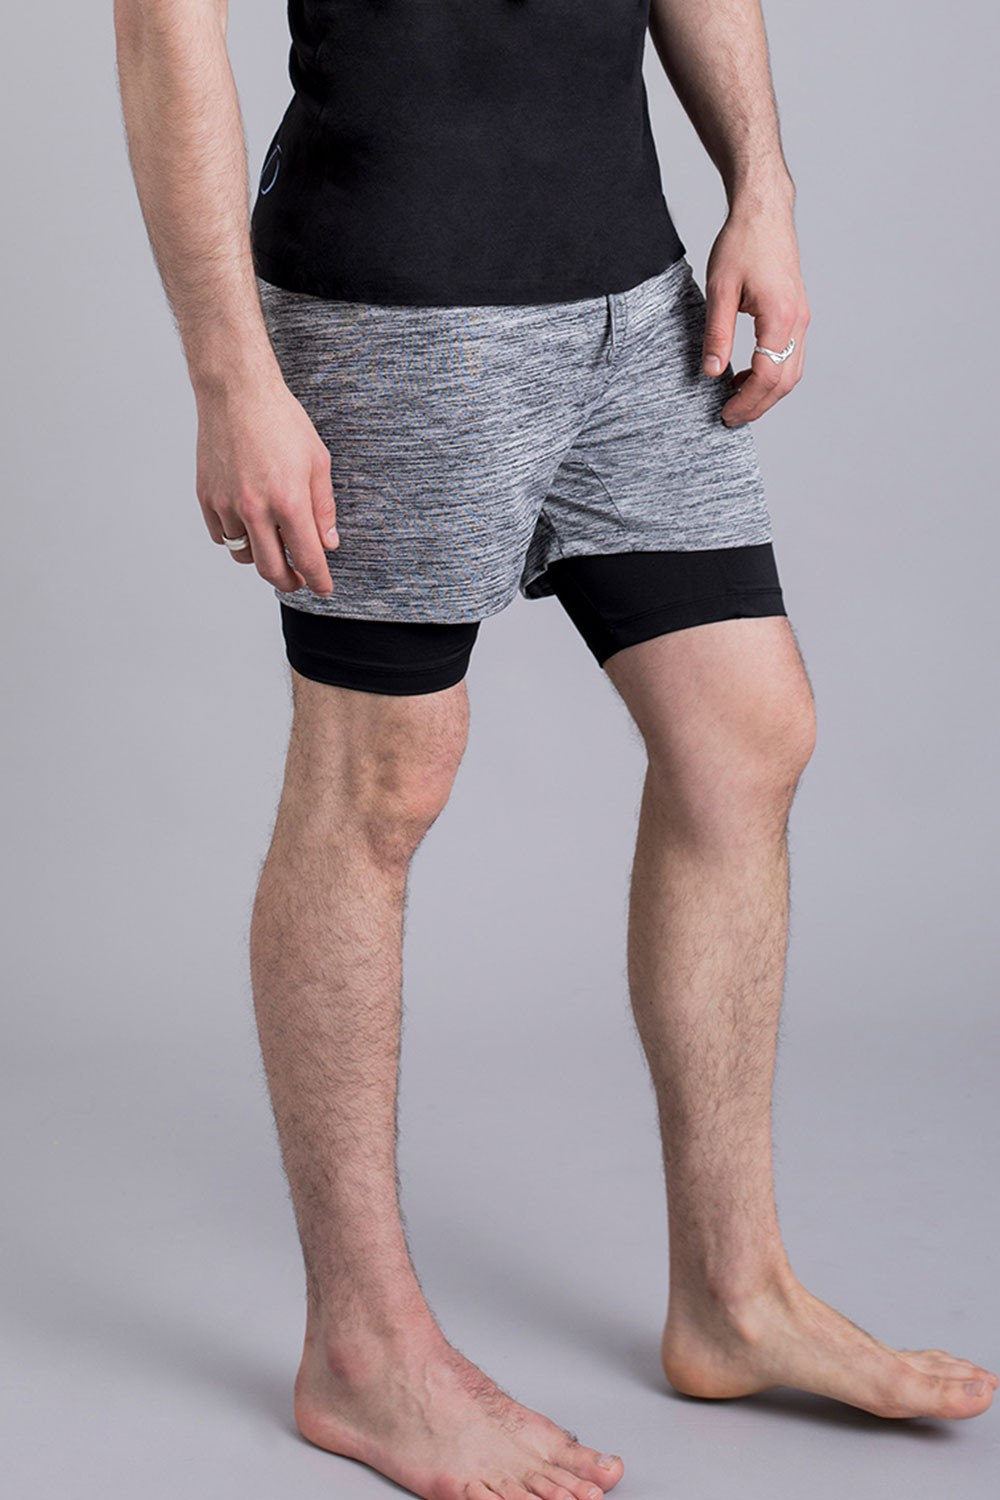 mens yoga shorts mens yoga pants · 2-dogs shorts qpyxcmf